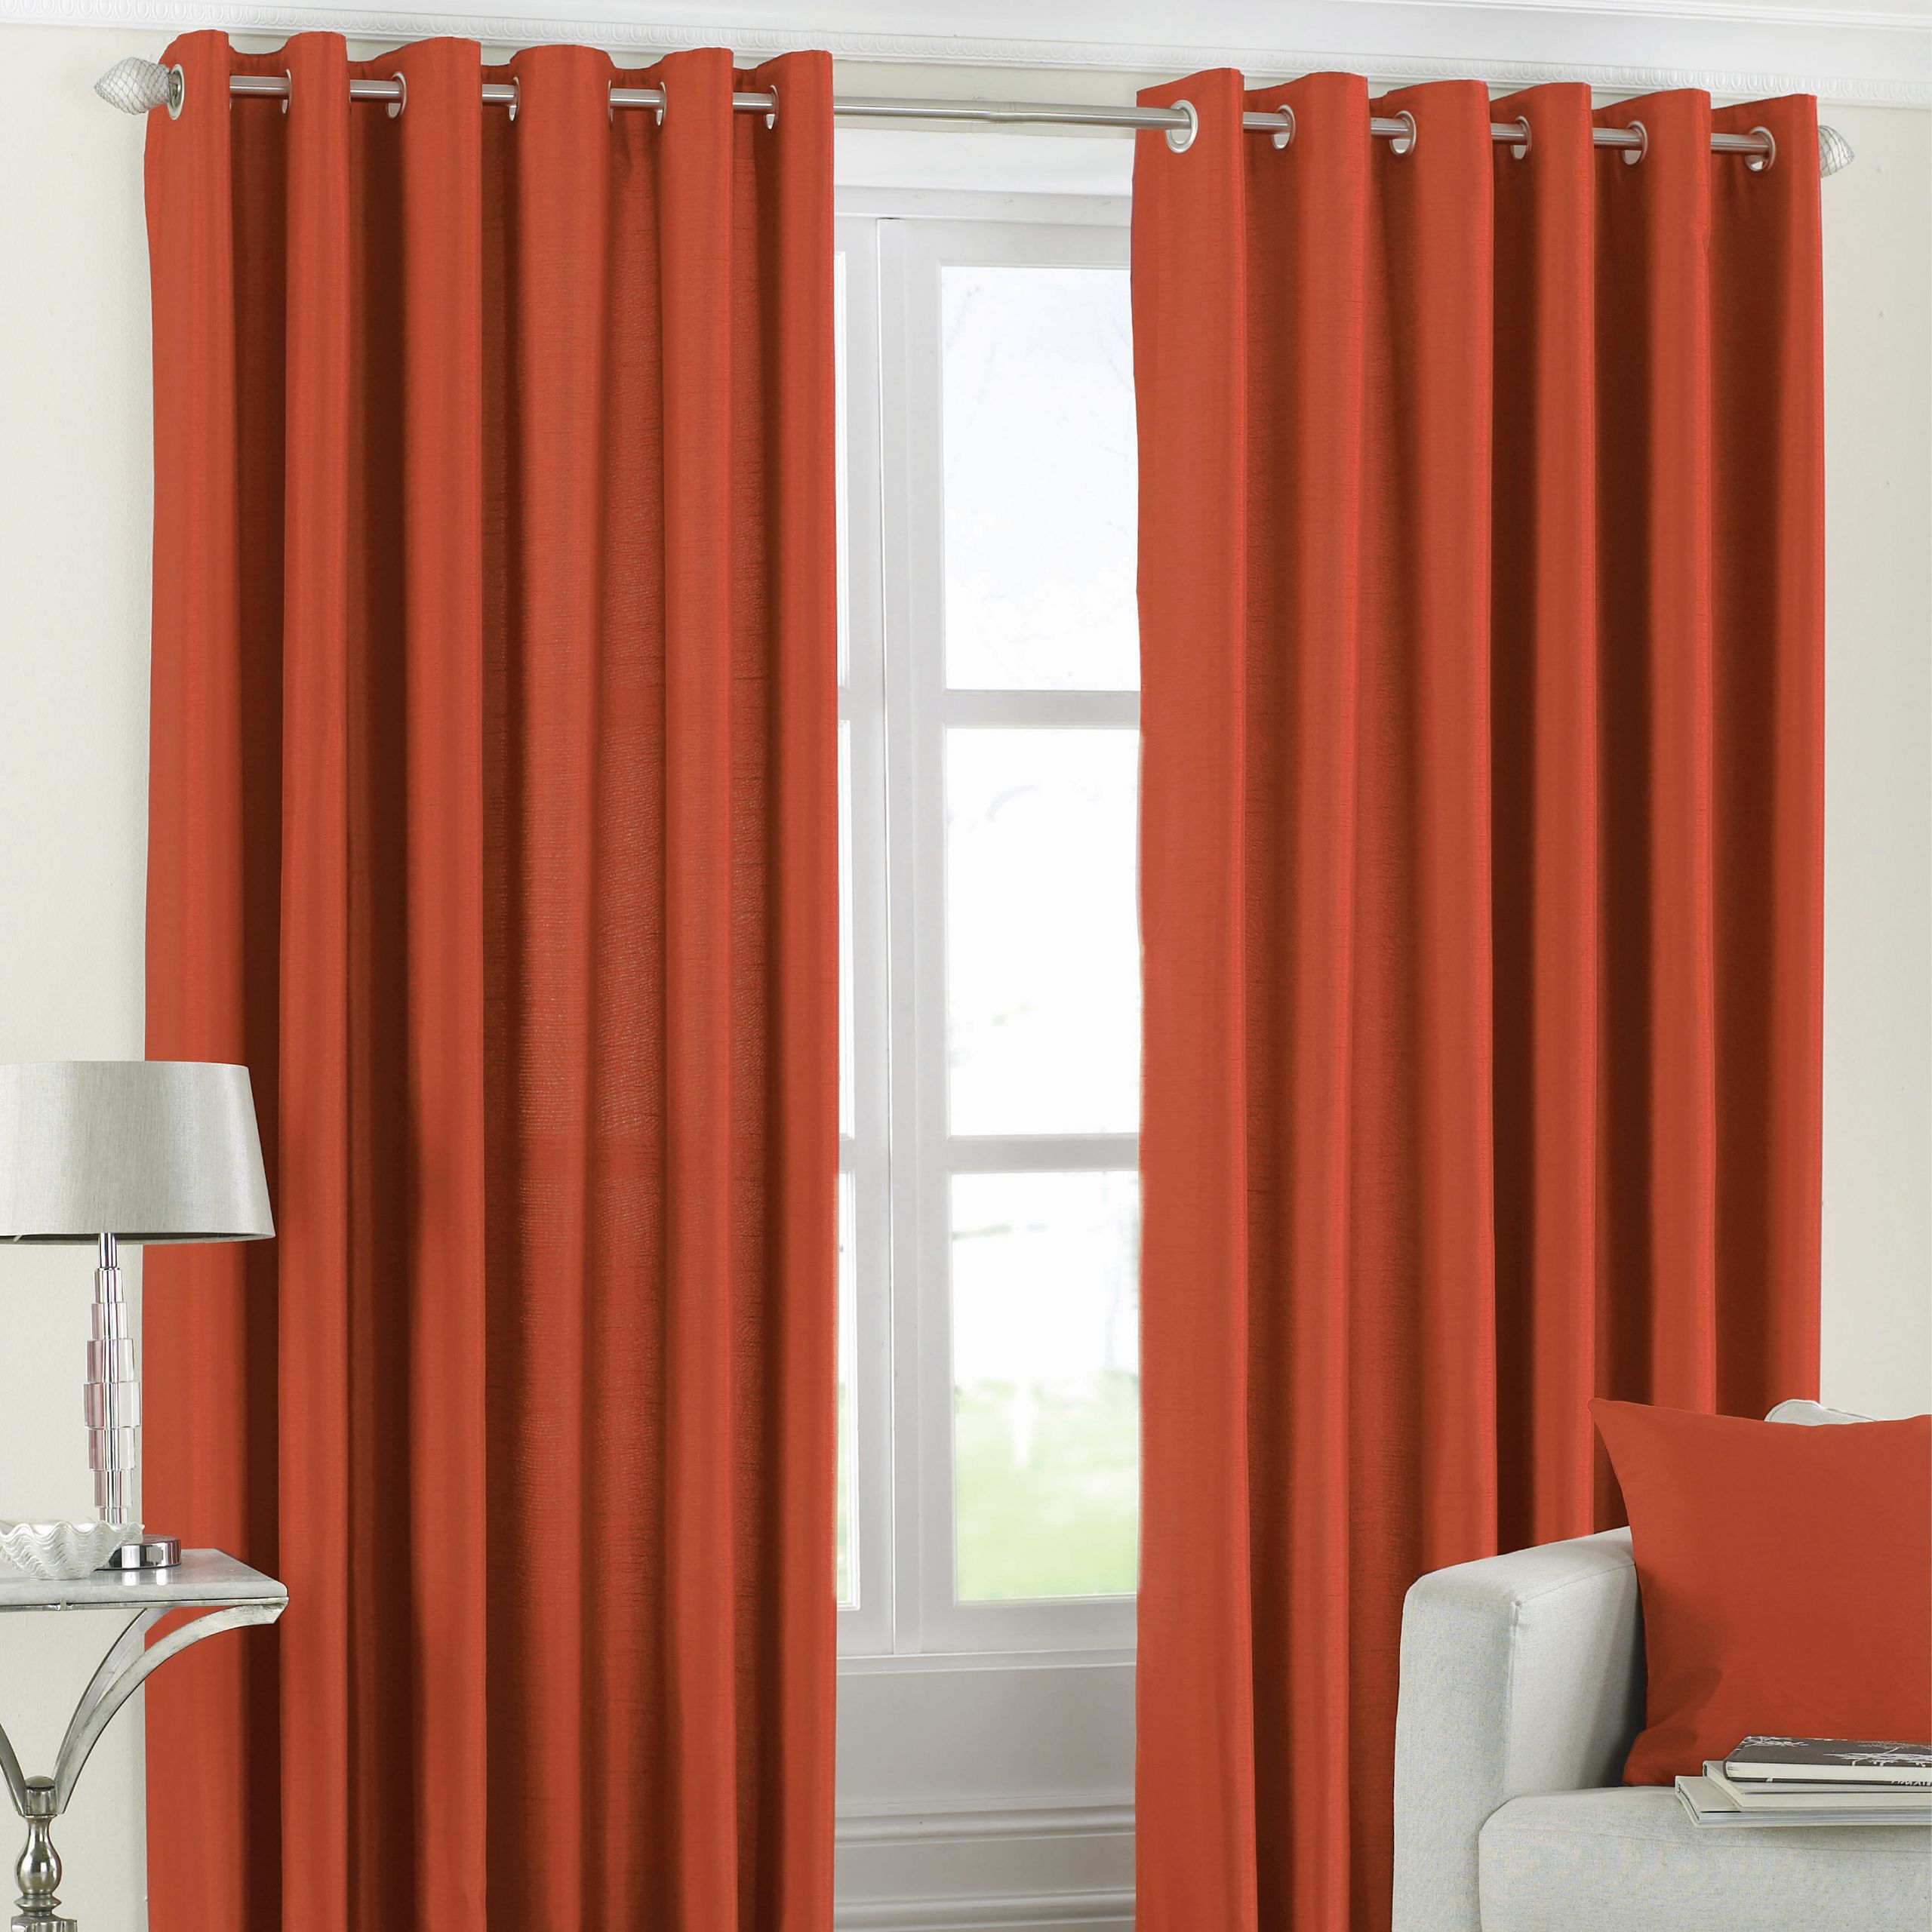 Fiji Silk Effect Eyelet Curtains in Orange